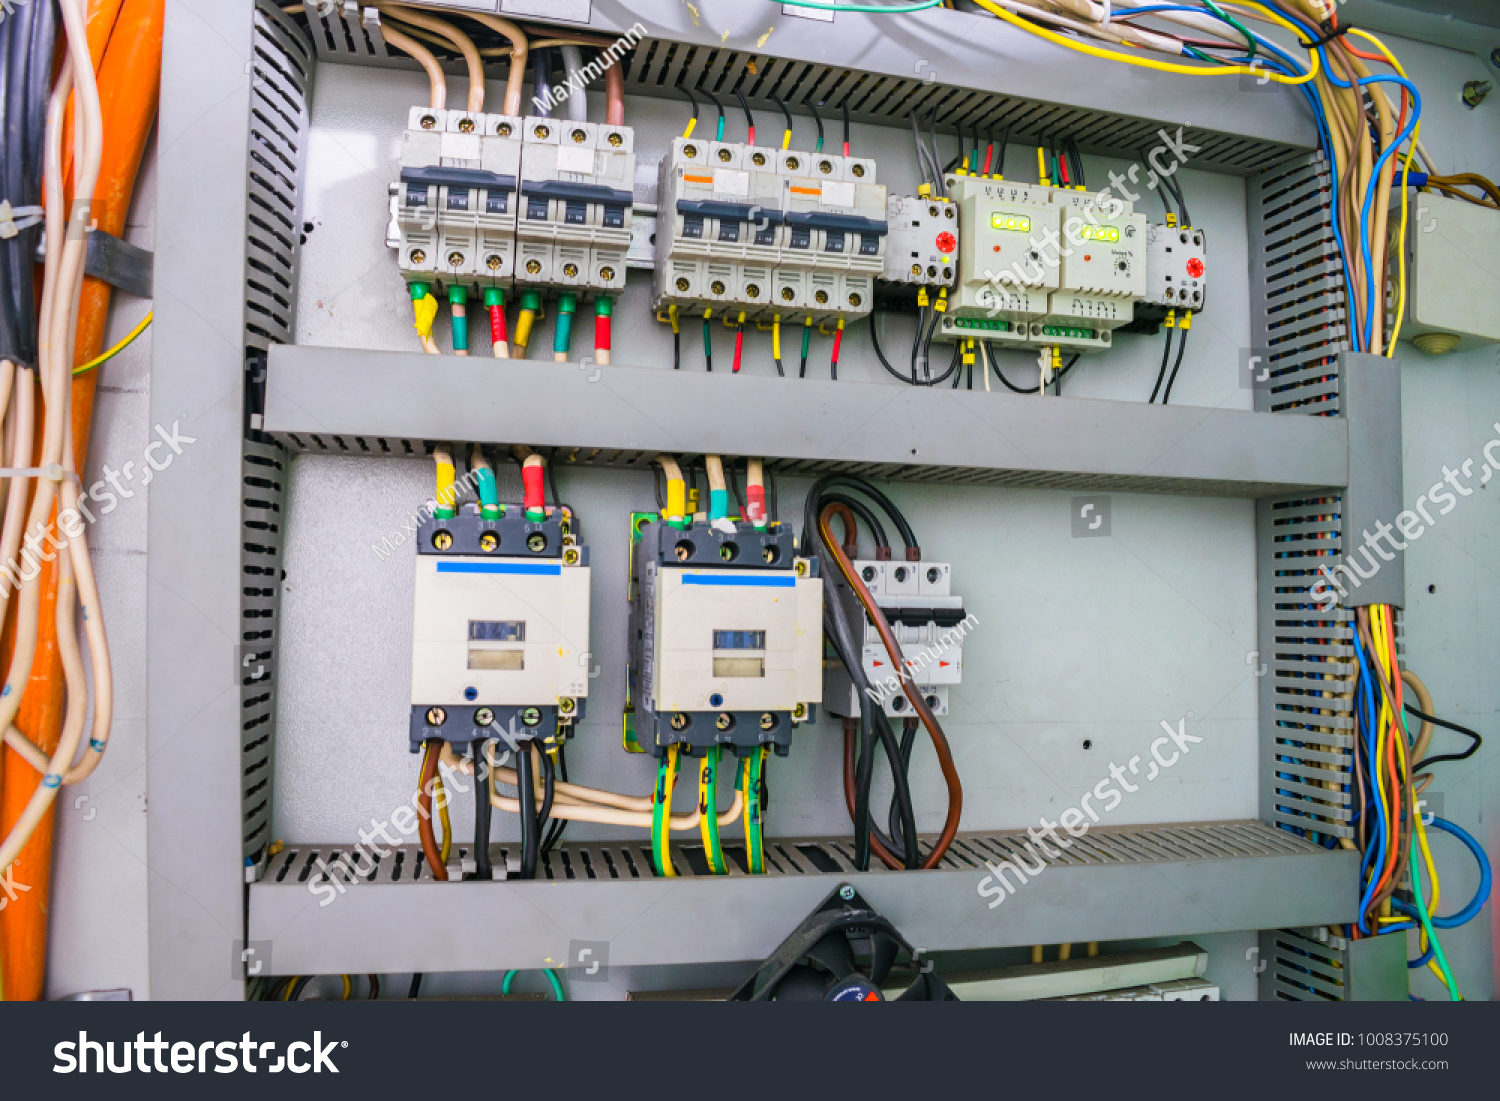 Fuse Box Electric Relay Automatic Machines Stock Photo Edit Now Elko Current With An And Board High Voltage Switches